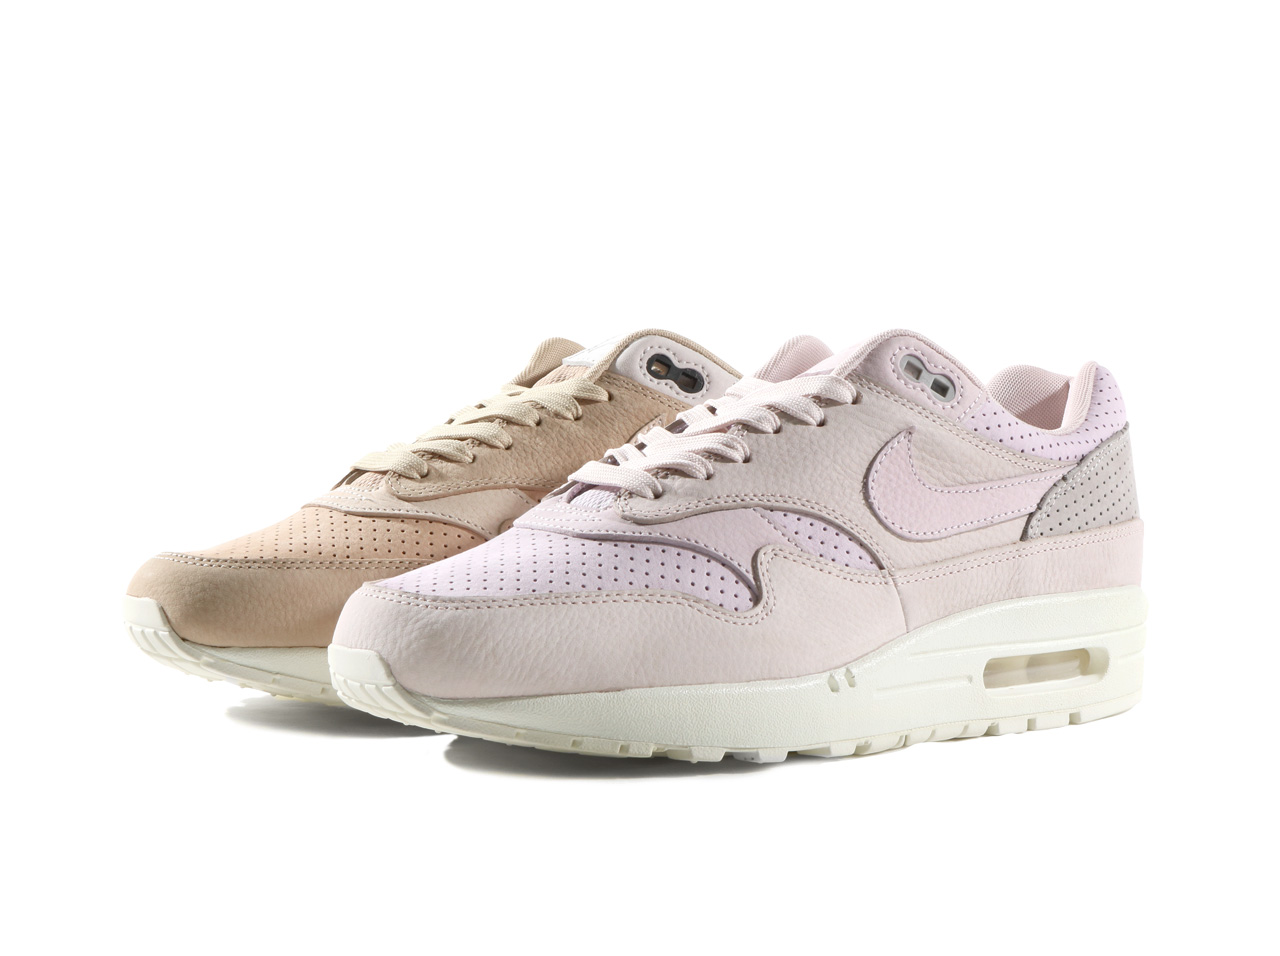 nikelab_airmax1_pinnacle_859554_200_600